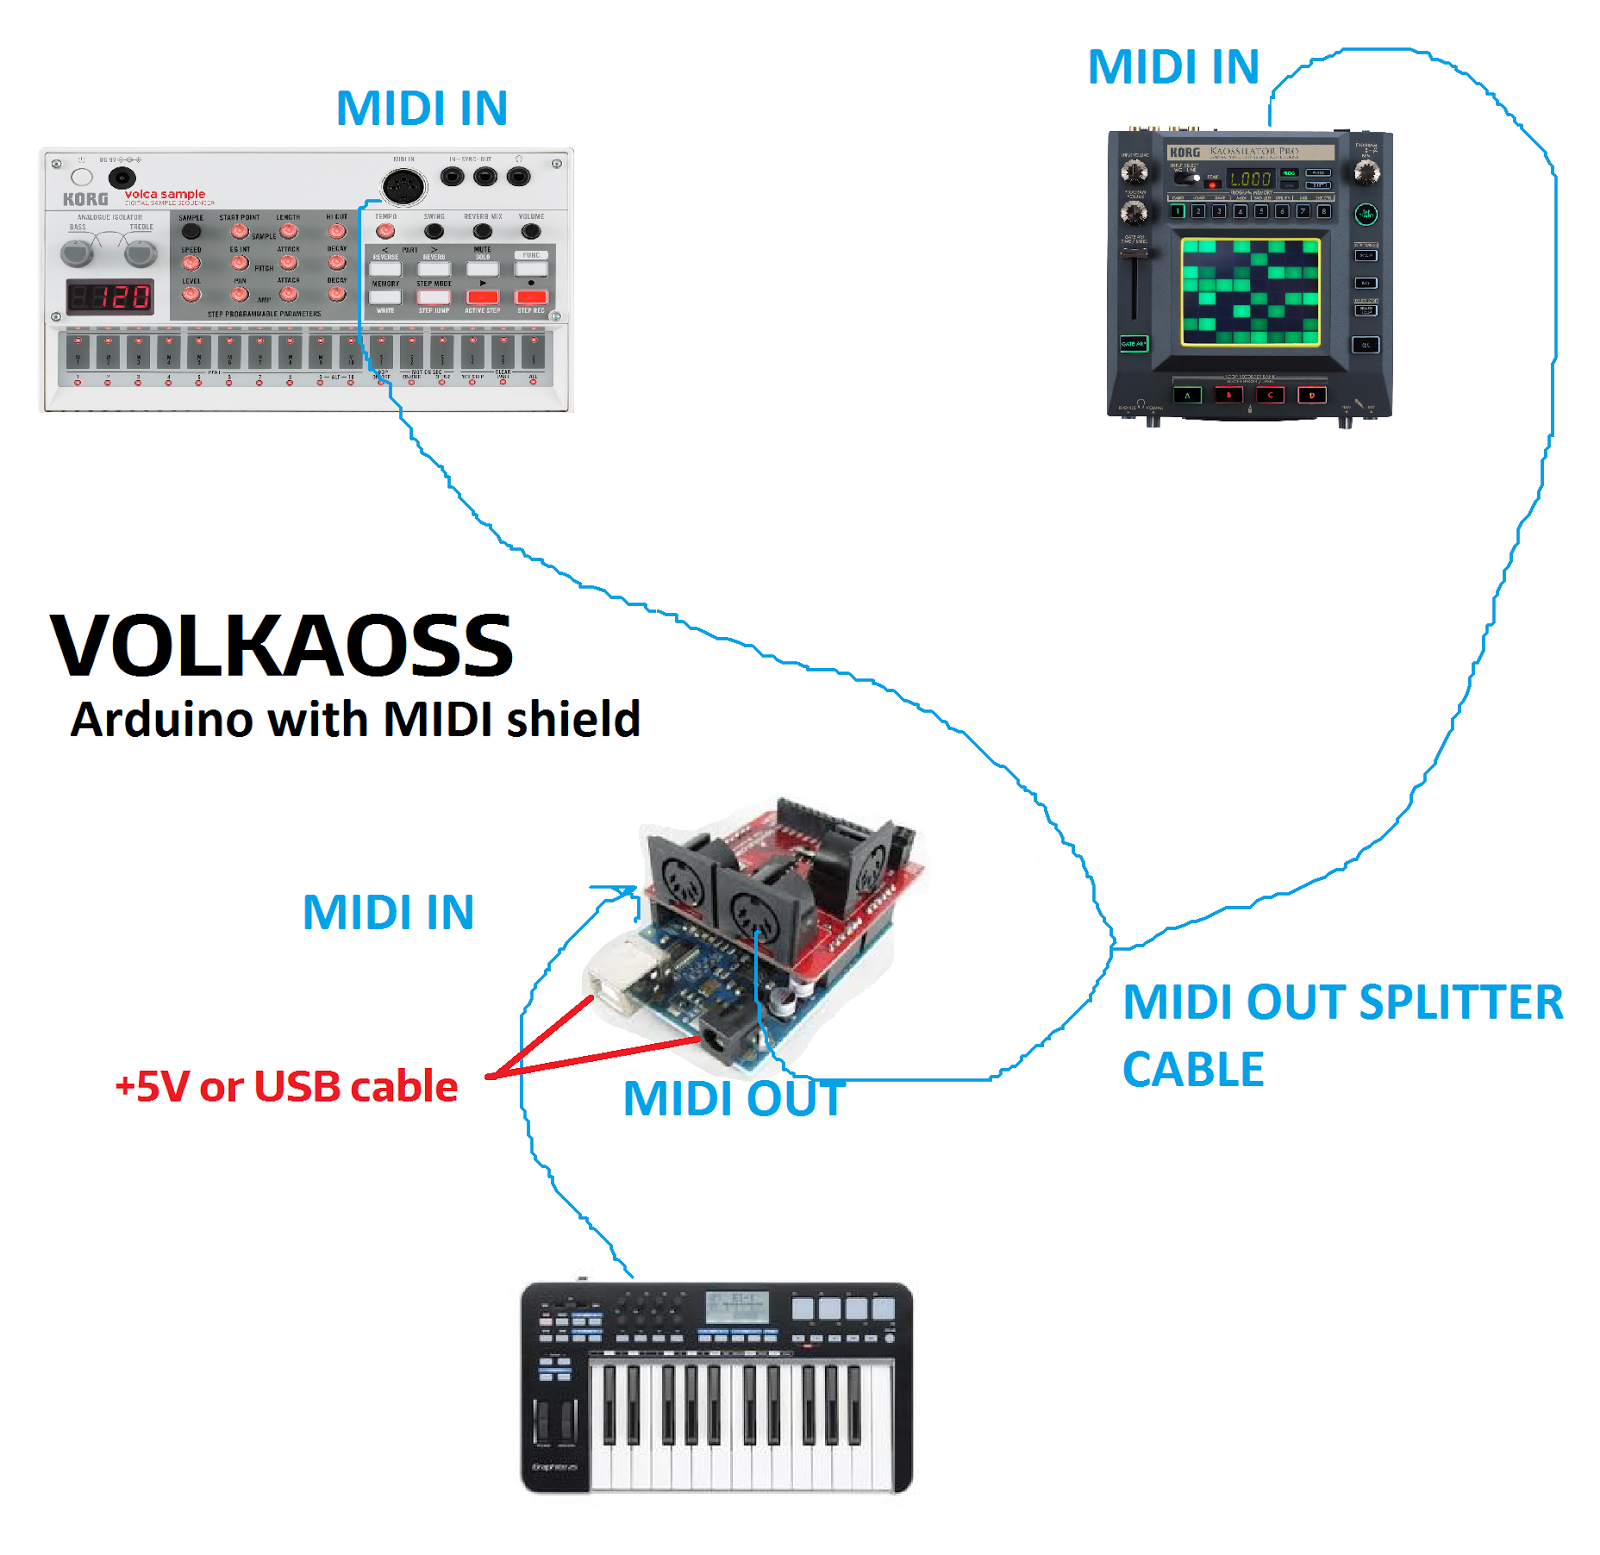 Techies Expedition Usb Midi Wiring Diagram You Need A Splitter Cable To Control The 2 Devices At Same Time Otherwise Simply Use Classic If Own Only One Of These